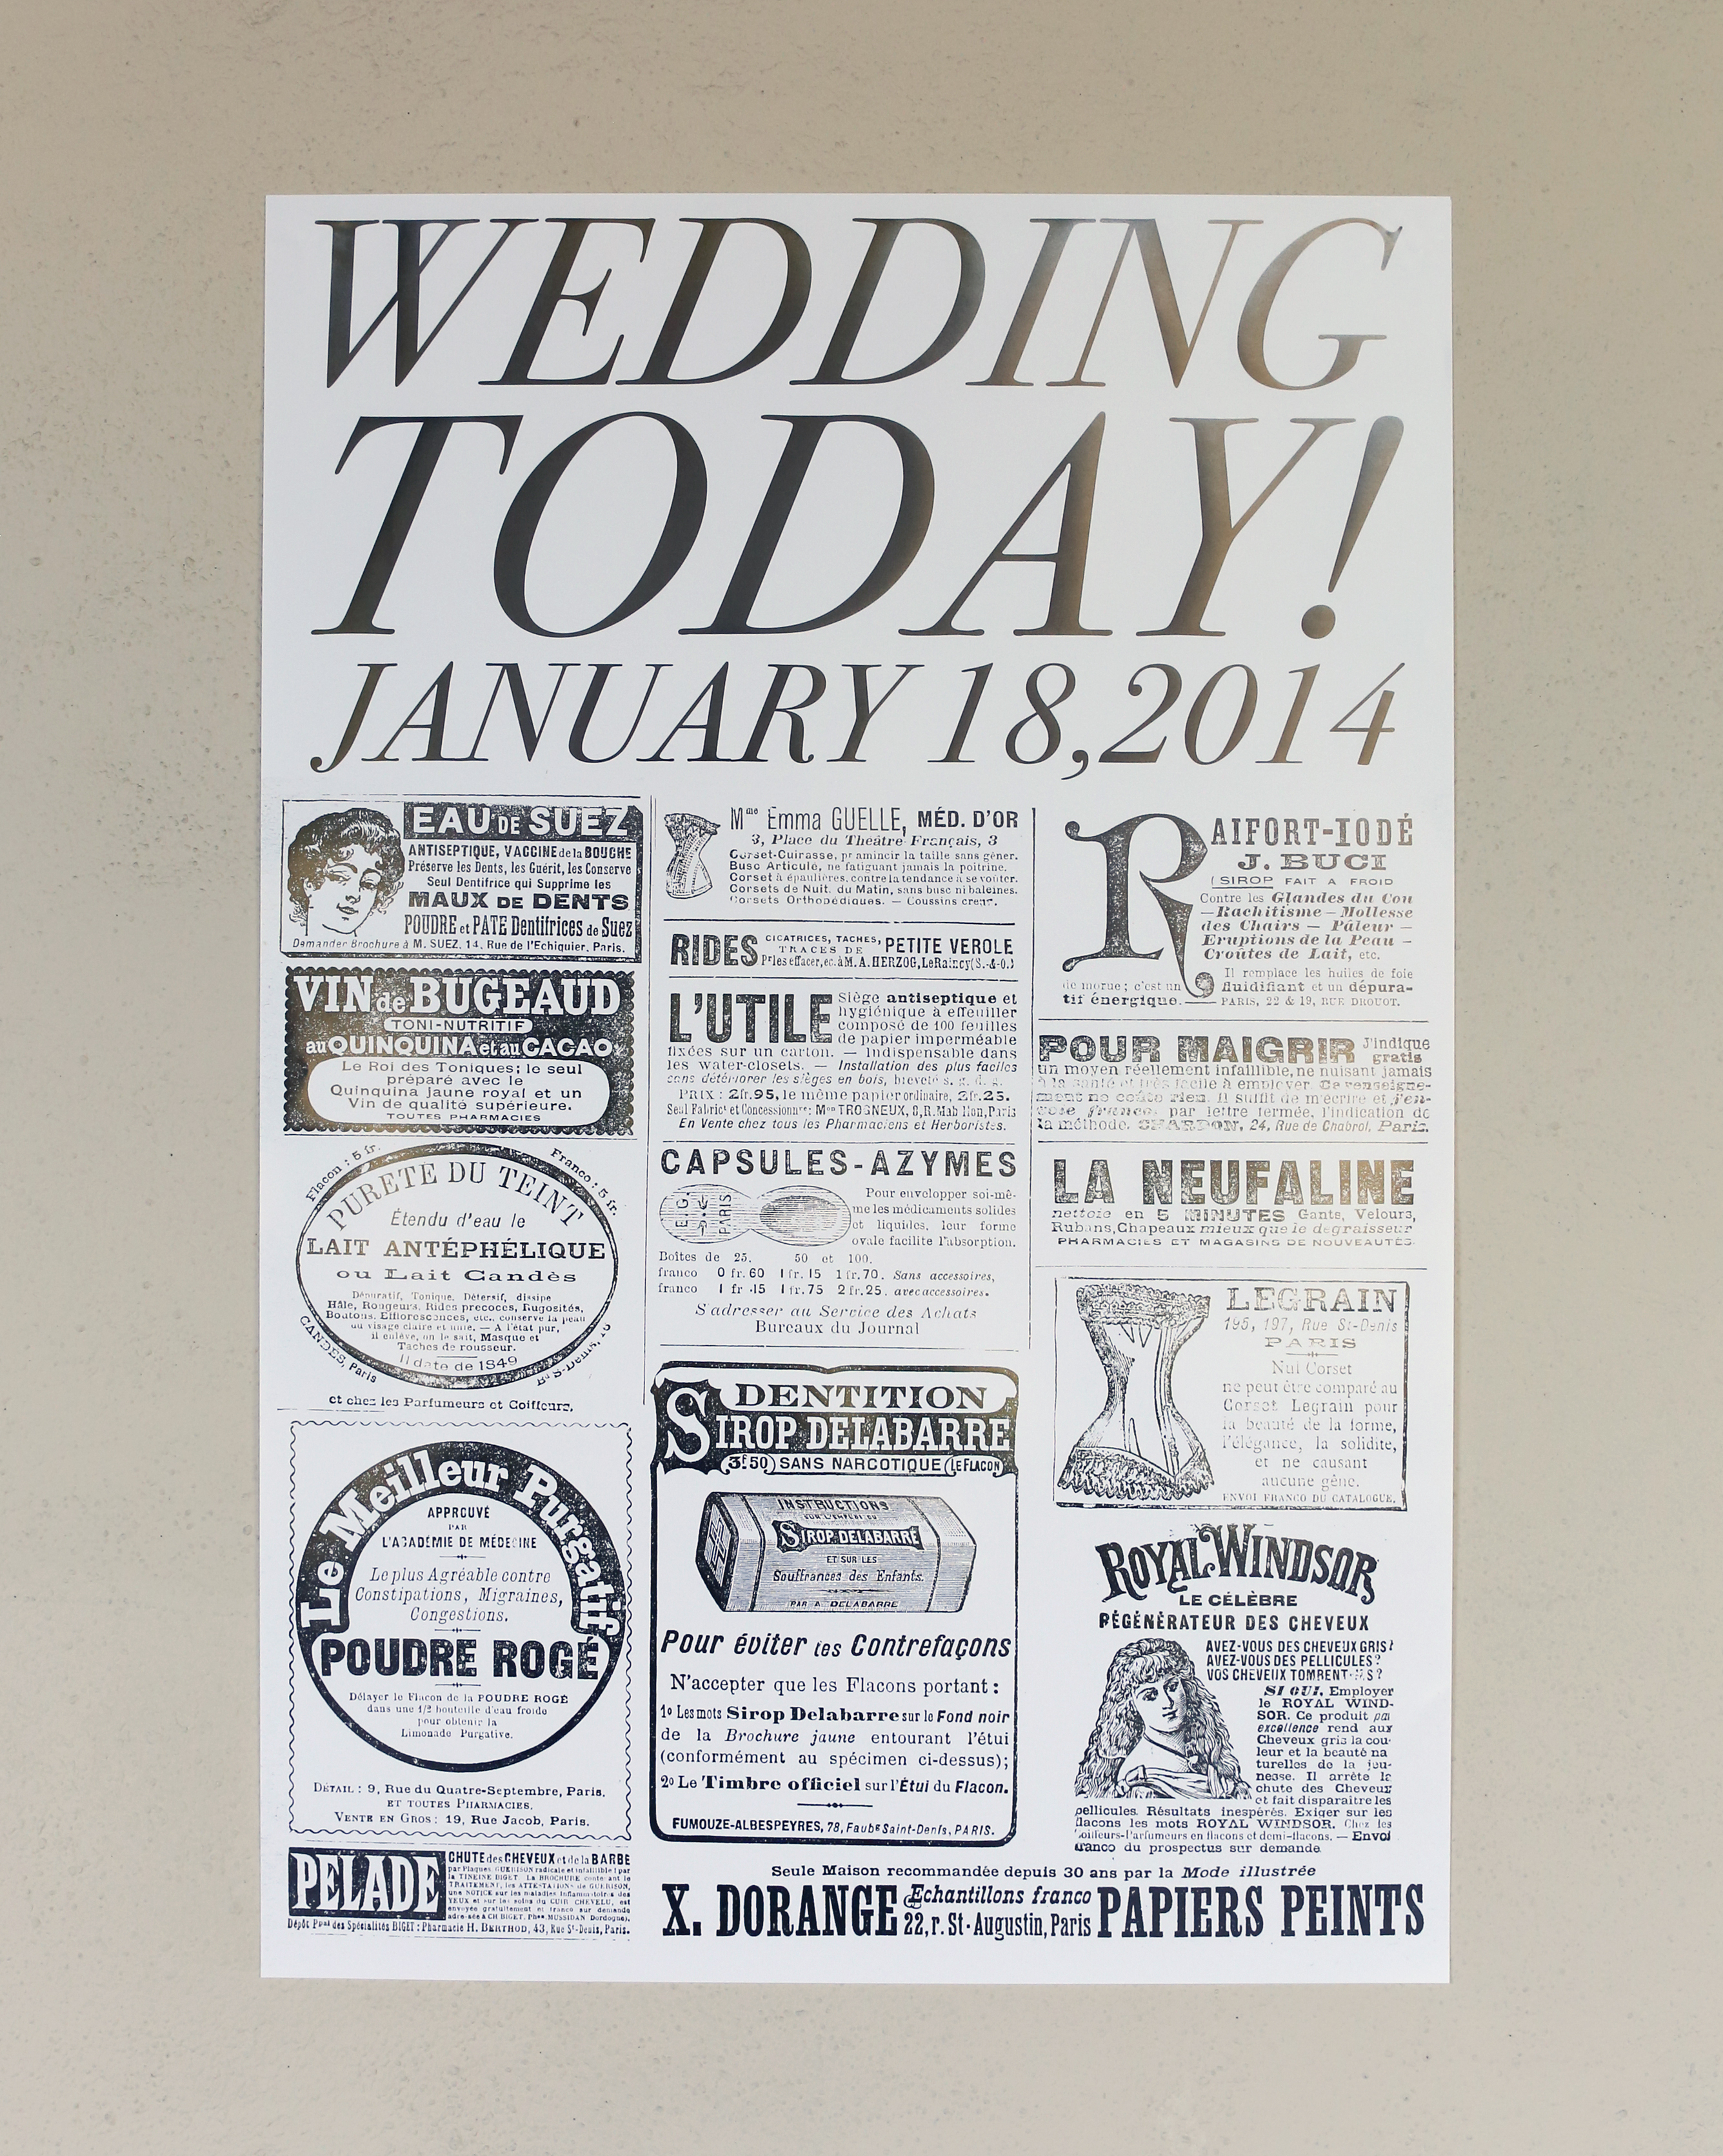 Newspaper-Inspired Save-the-Date Poster